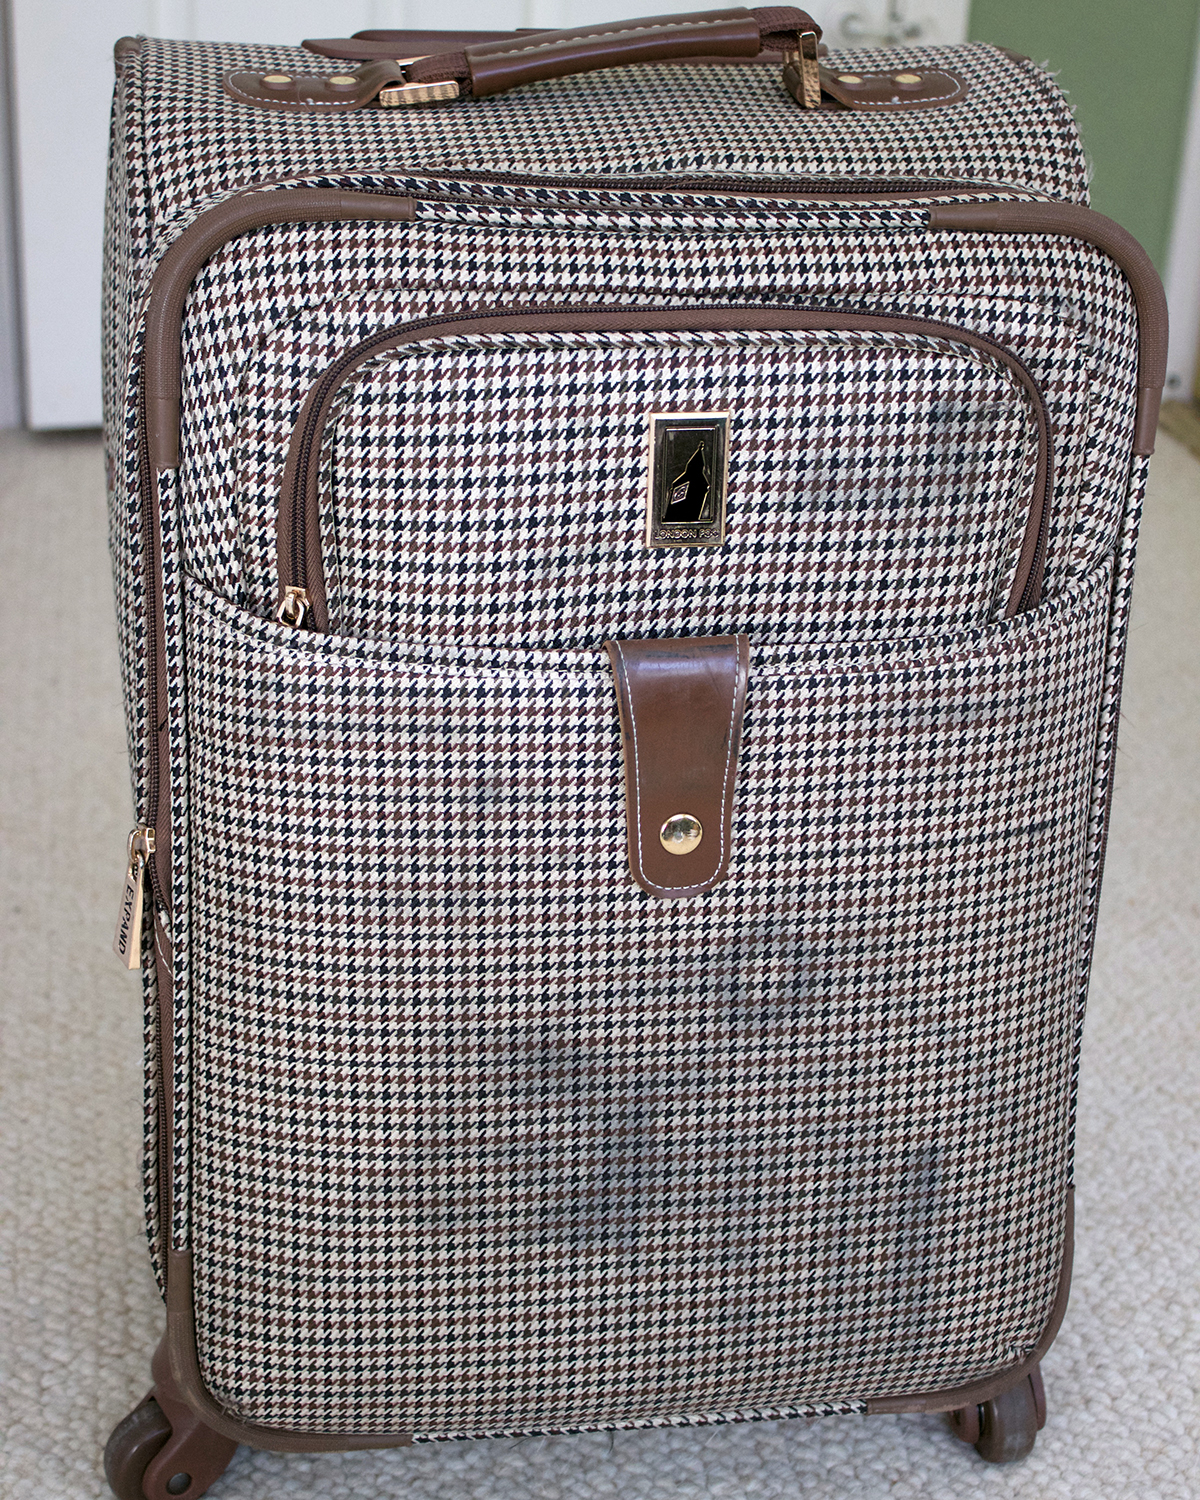 I Have This Carry On Rolling Case That Has {obviously} Seen Better Days.  The Wheels Donu0027t Work That Well Anymore And The Outside Is Quite... Quite  Dirty.